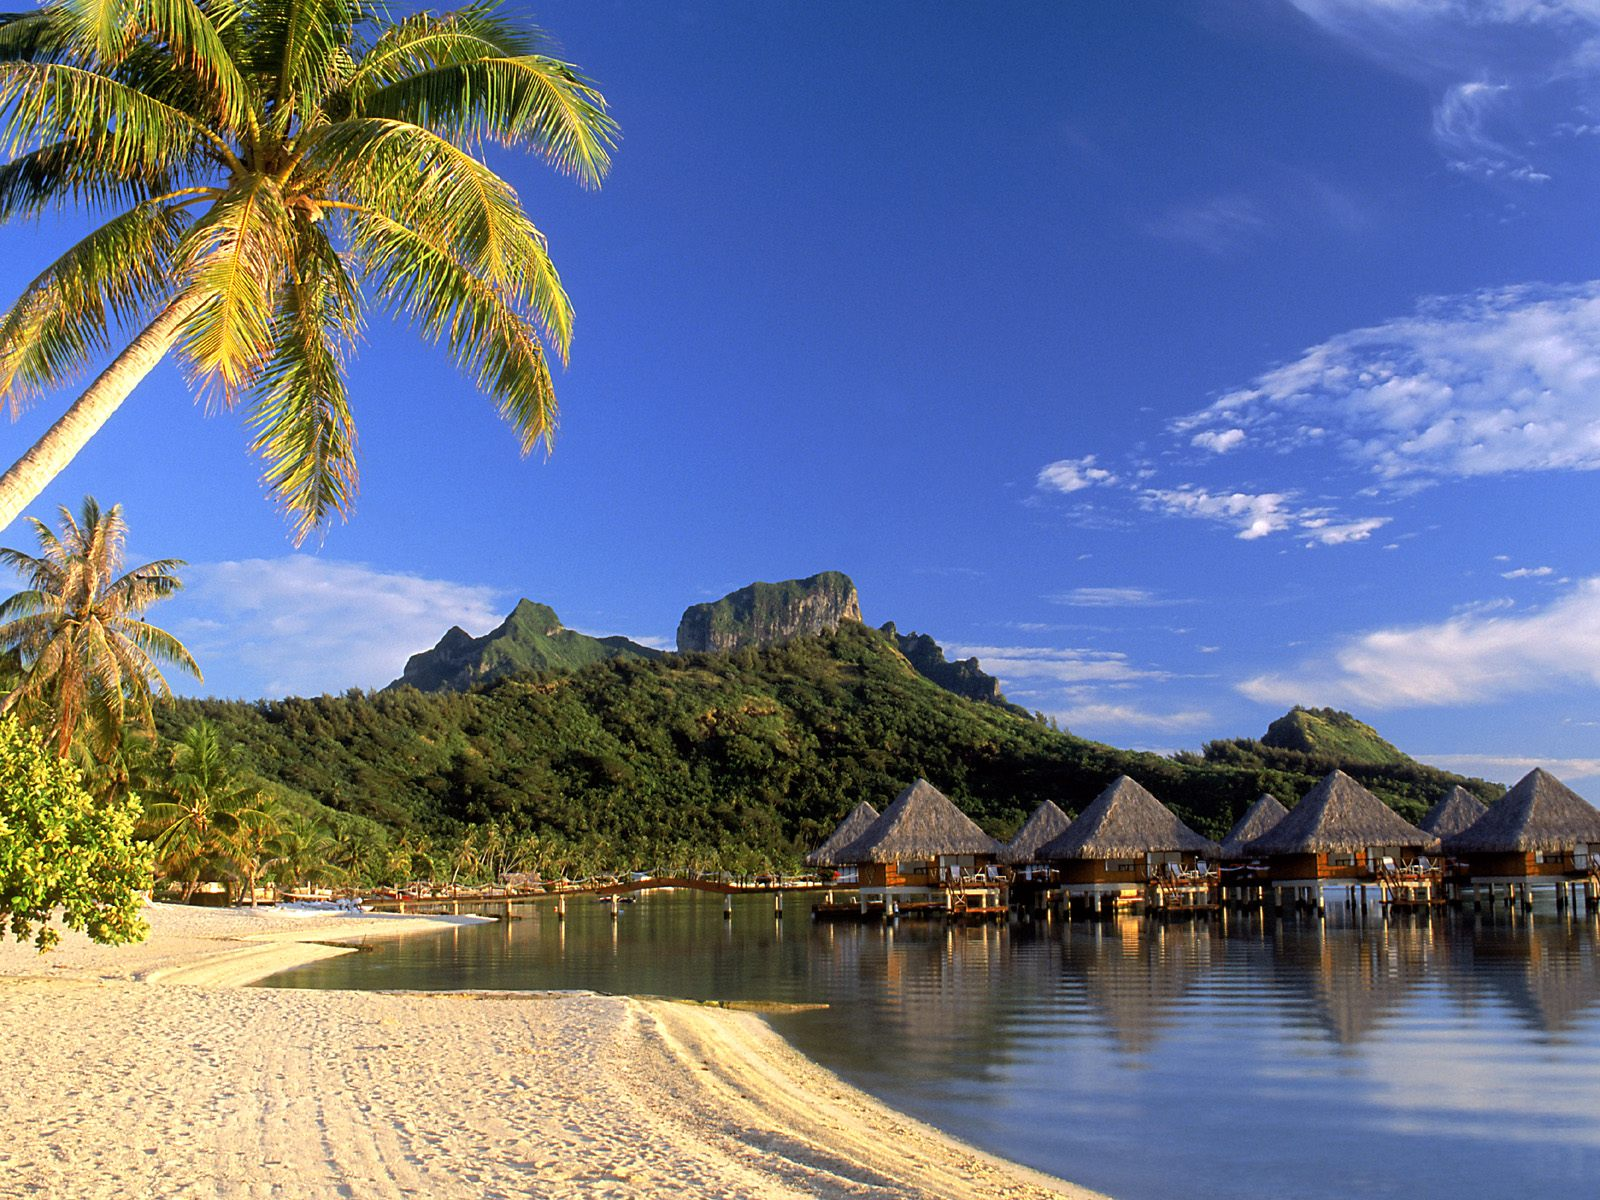 download 1600x1200 tropical island beach scenery beatiful 1600x1200